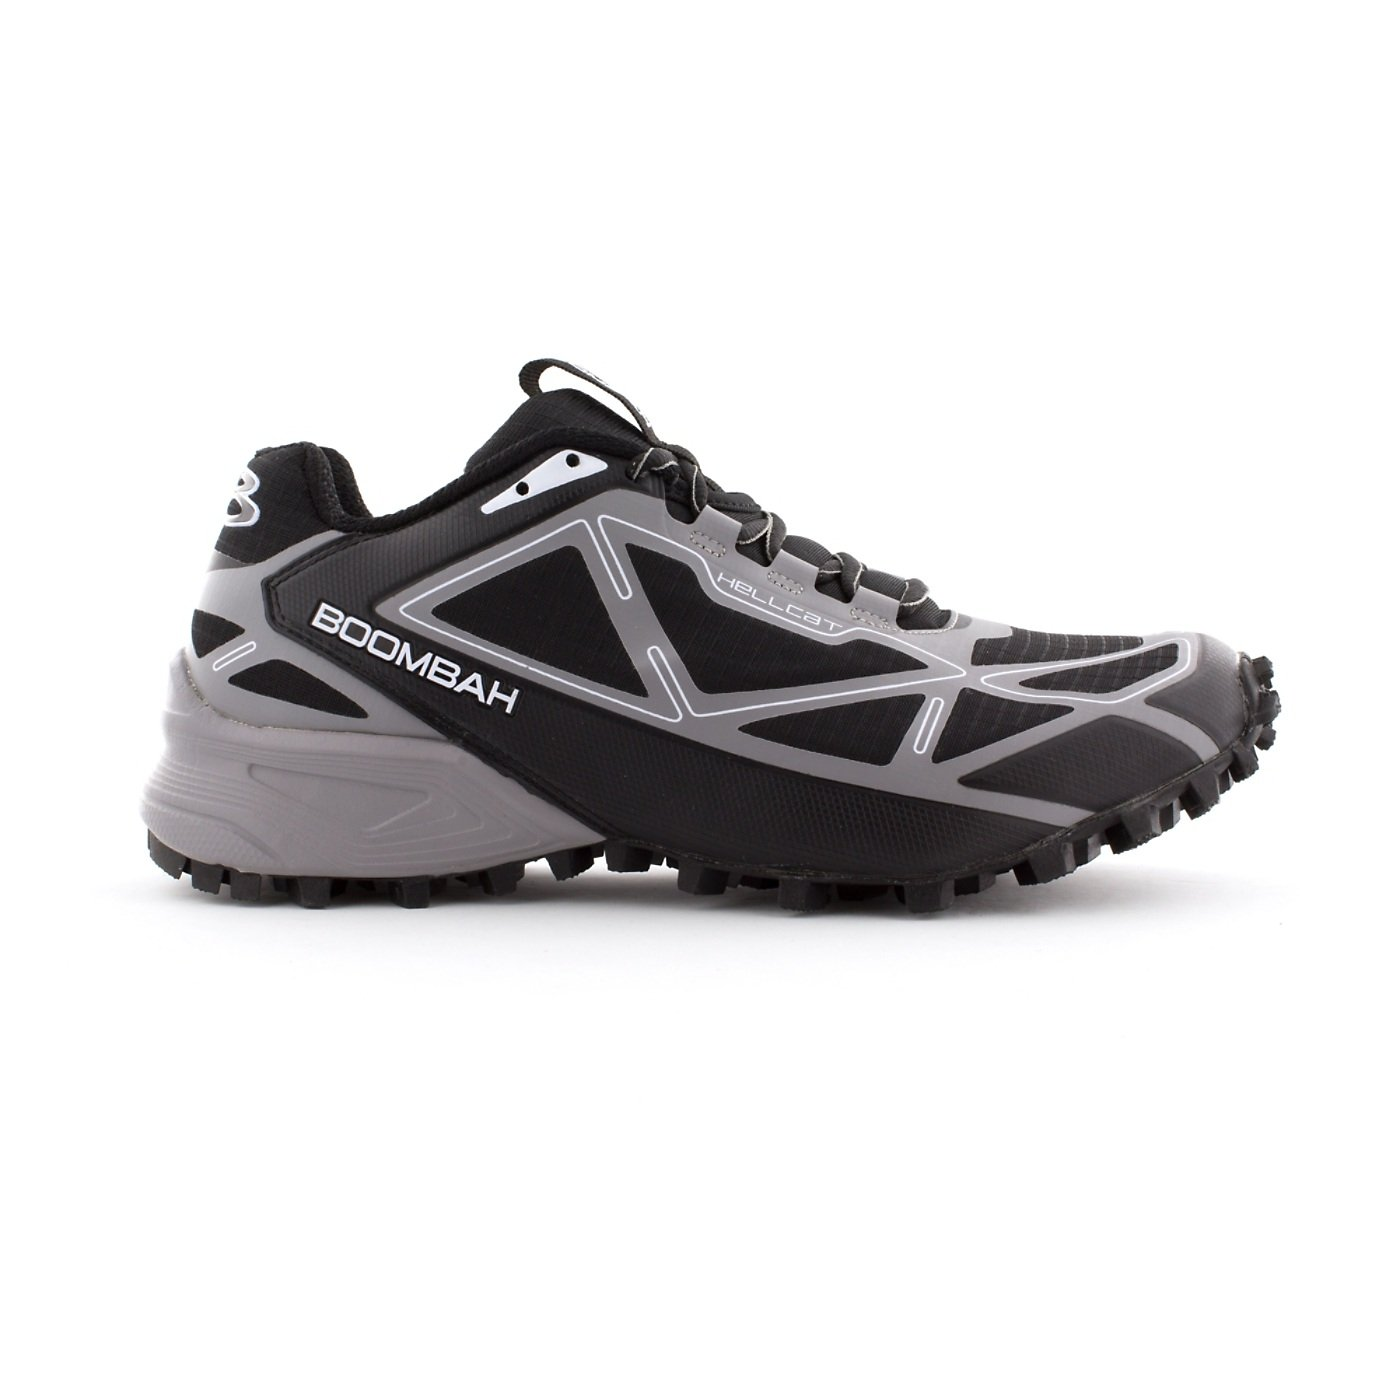 Boombah Men's Hellcat Trail Shoe - 14 Color Options - Multiple Sizes B073X6MJ5P 14|Black/Gray